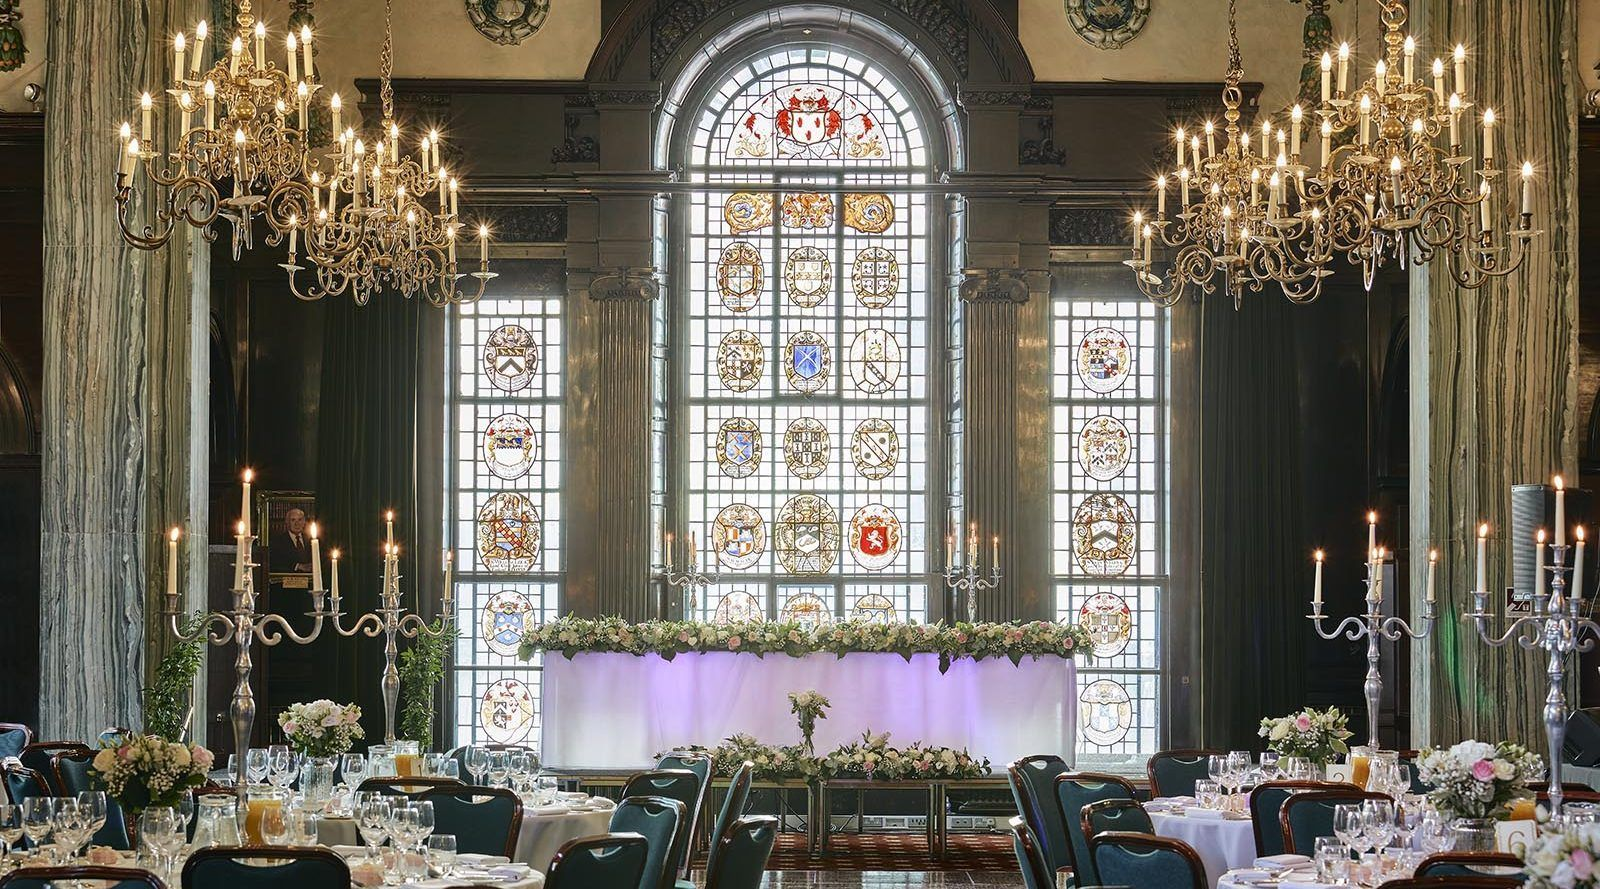 Wedding venue with candlearbre and stained glass window